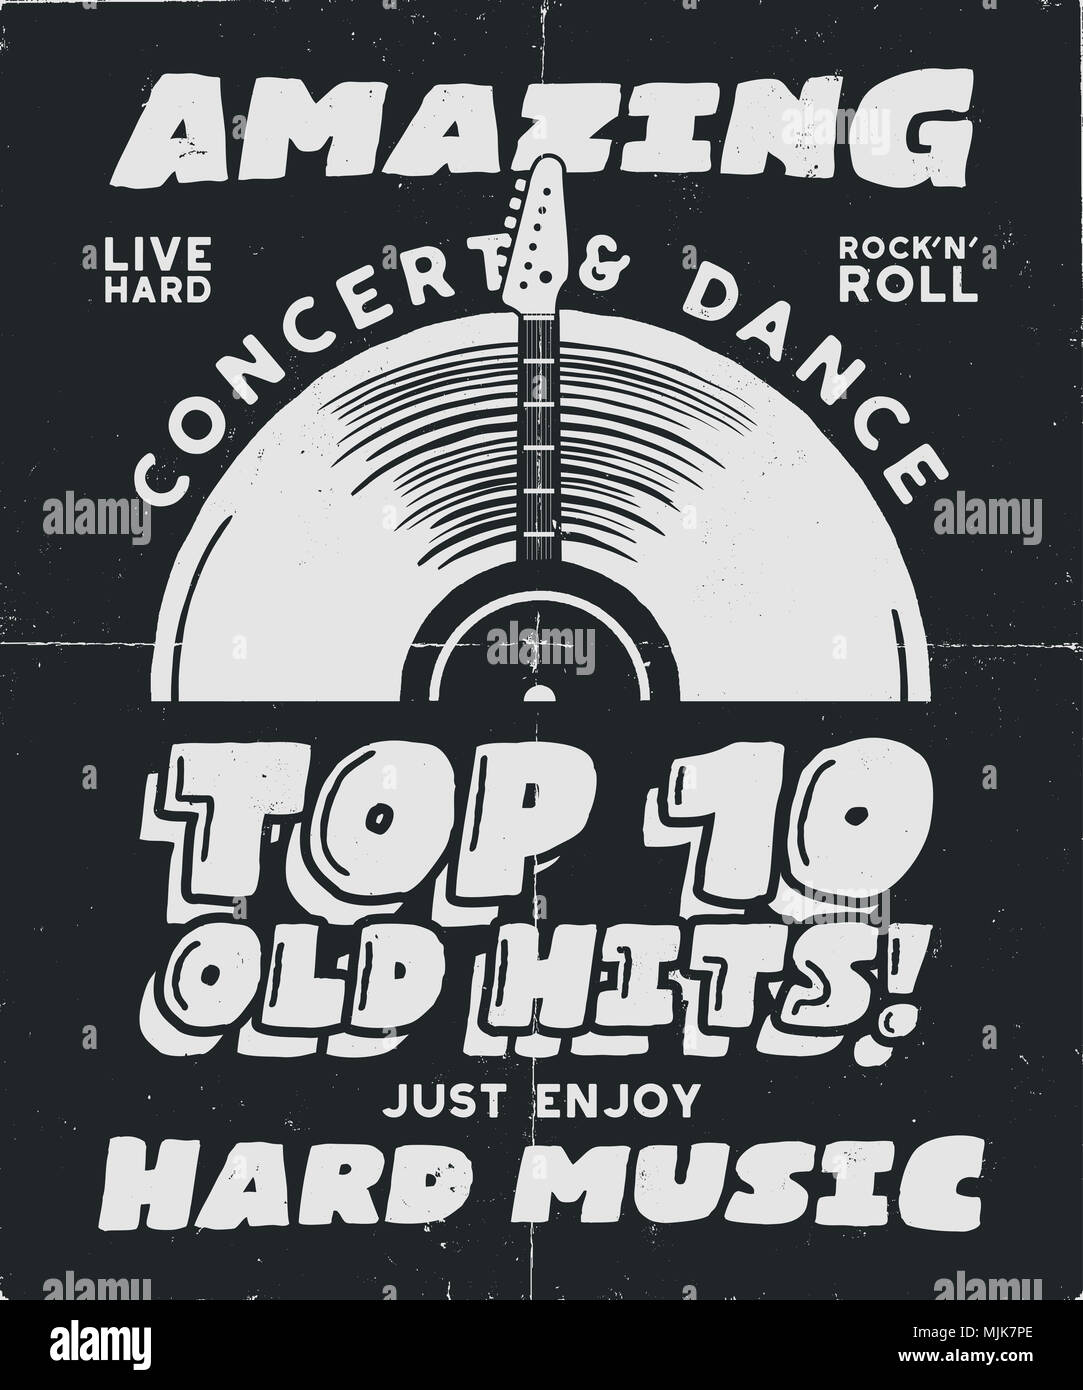 Hard Music Poster. Concert and Festival Tee Graphic Design. Retro music poster, festival invitation. Musical T-Shirt print design. Vintage hand drawn style. Black and white colors. Stock  - Stock Image